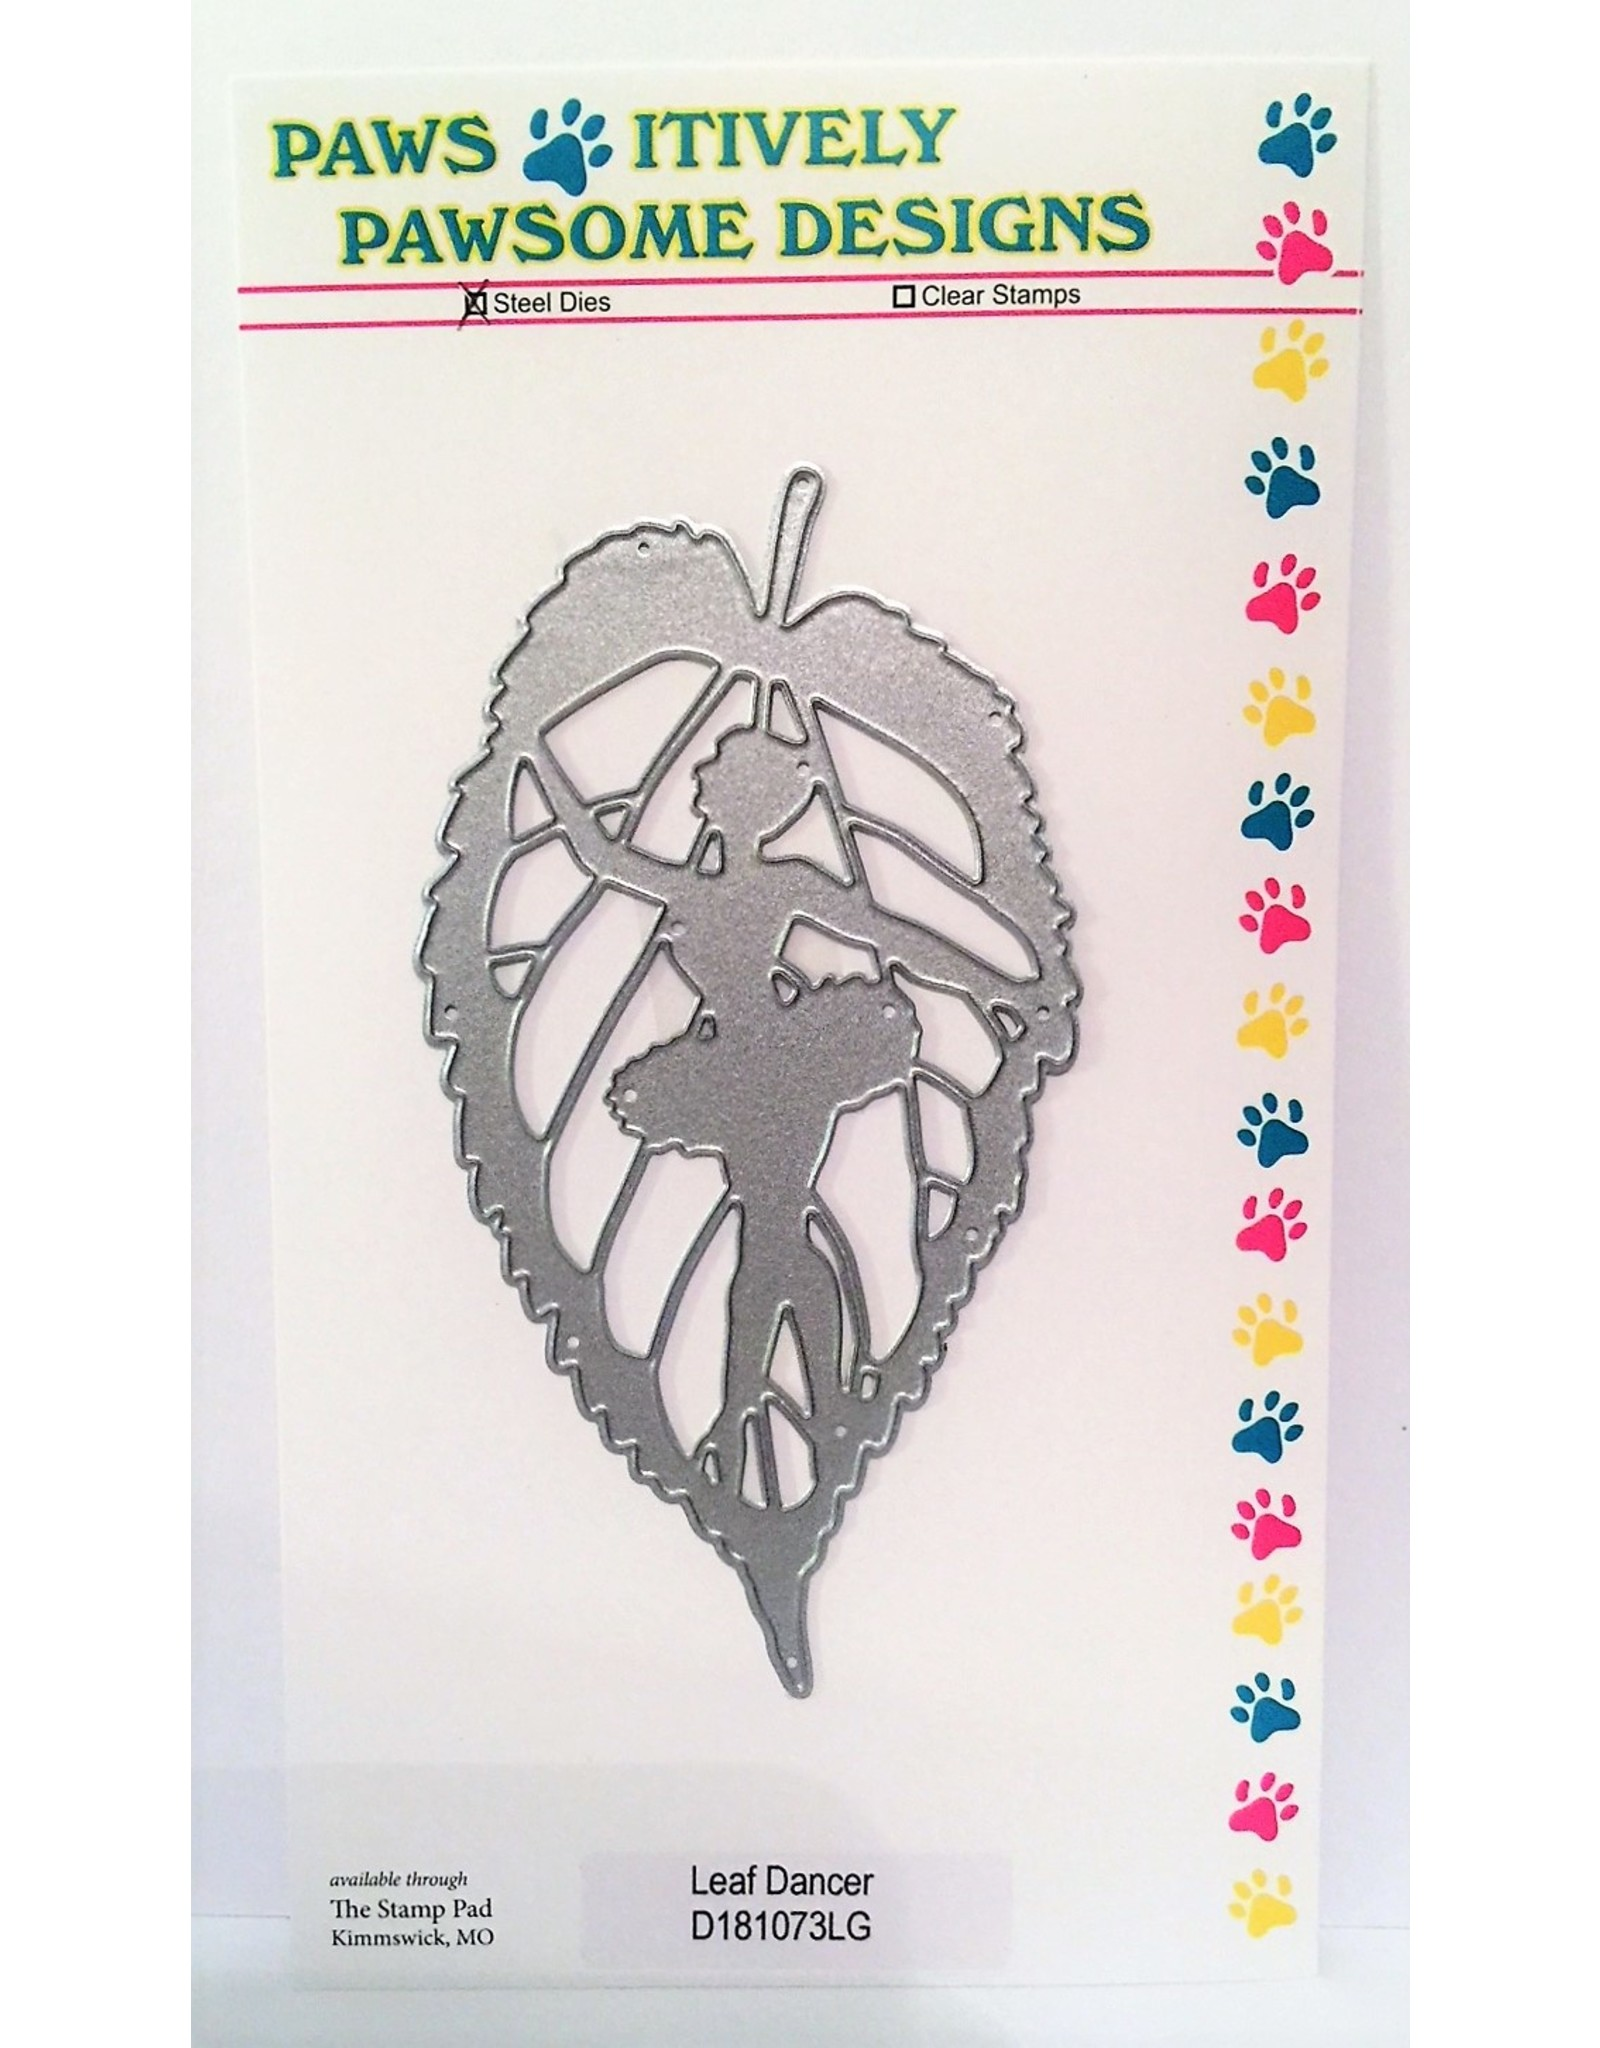 Paws-Itively Pawsome Designs Leaf Dancer - Die